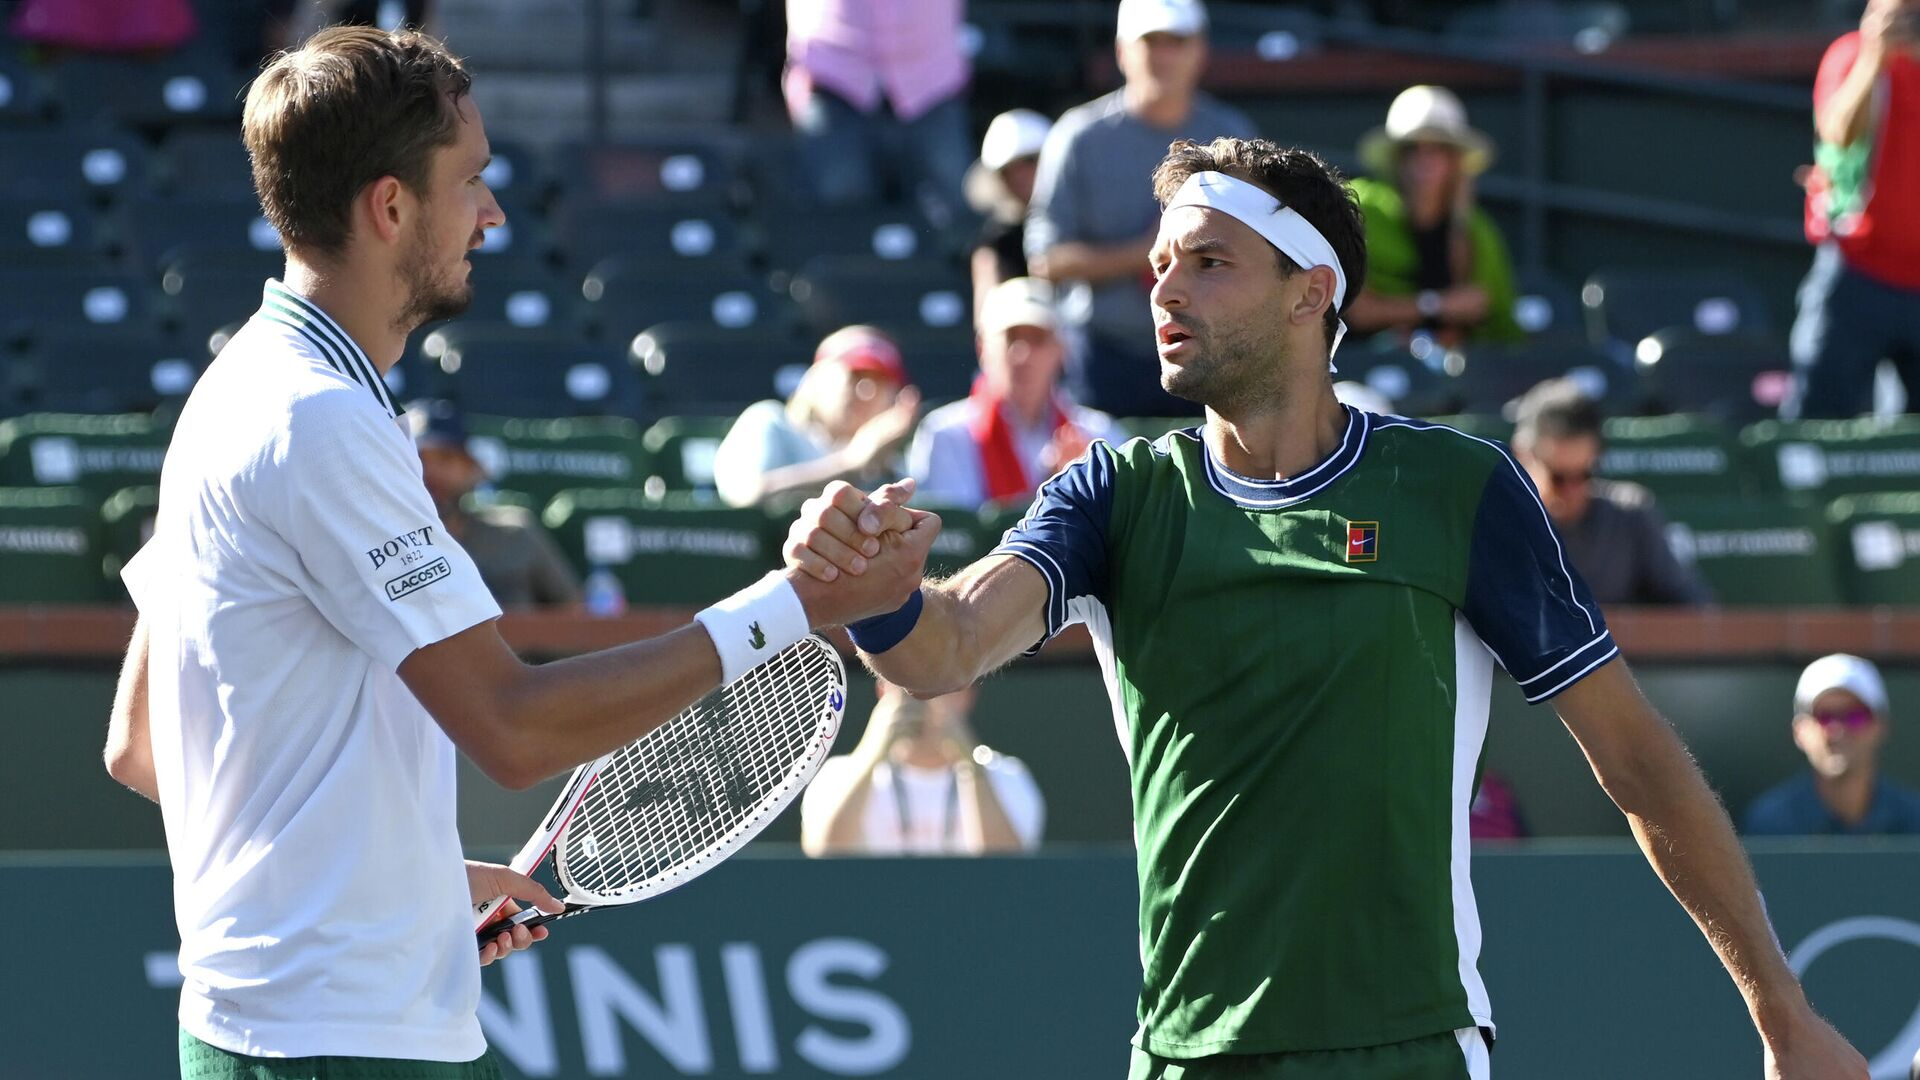 Oct 13, 2021; Indian Wells, CA, USA; Daniil Medvedev (RUS) shakes hands with Grigor Dimitrov (BUL) after their fourth round match during the BNP Paribas Open at the Indian Wells Tennis Garden - Sputnik International, 1920, 14.10.2021